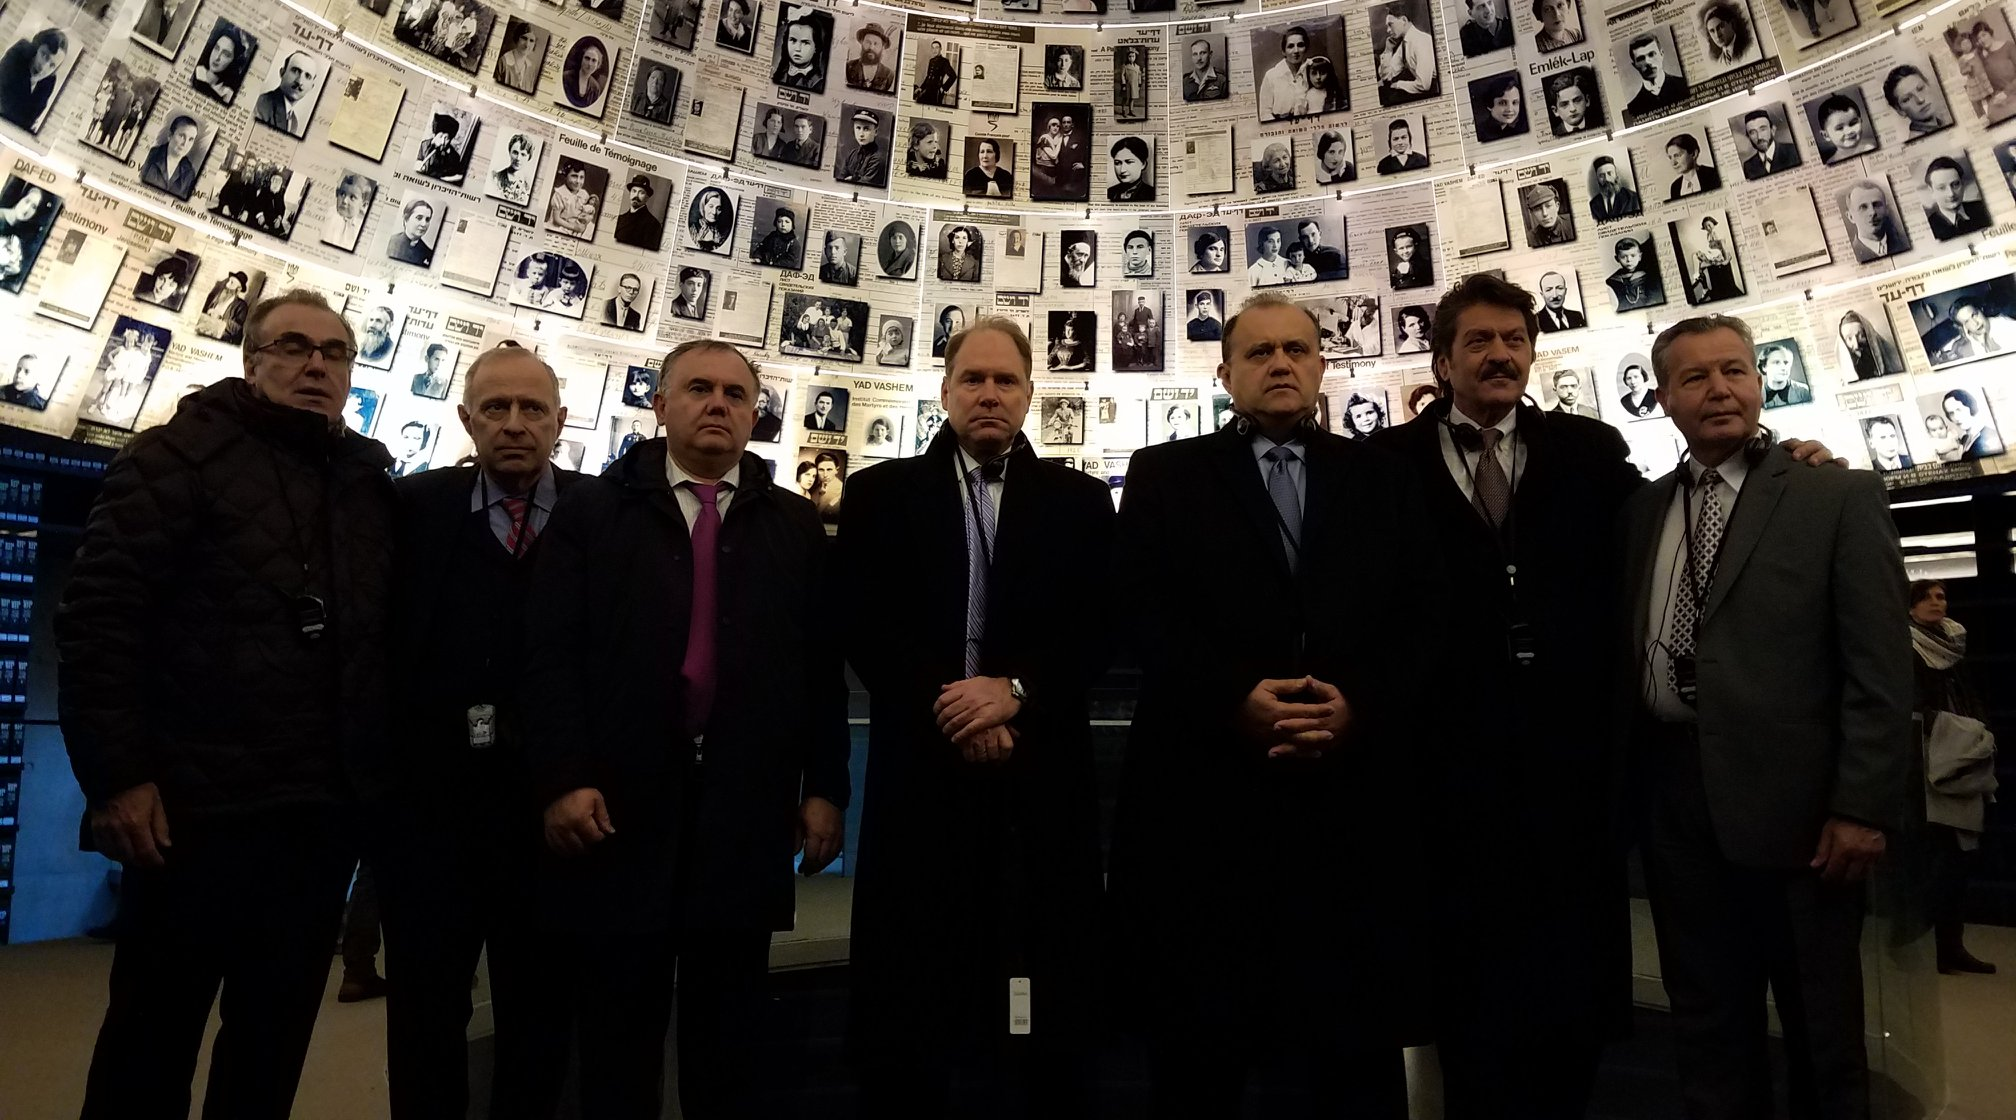 Delegation visits Yad Vashem Holocaust Museum in Jerusalem.